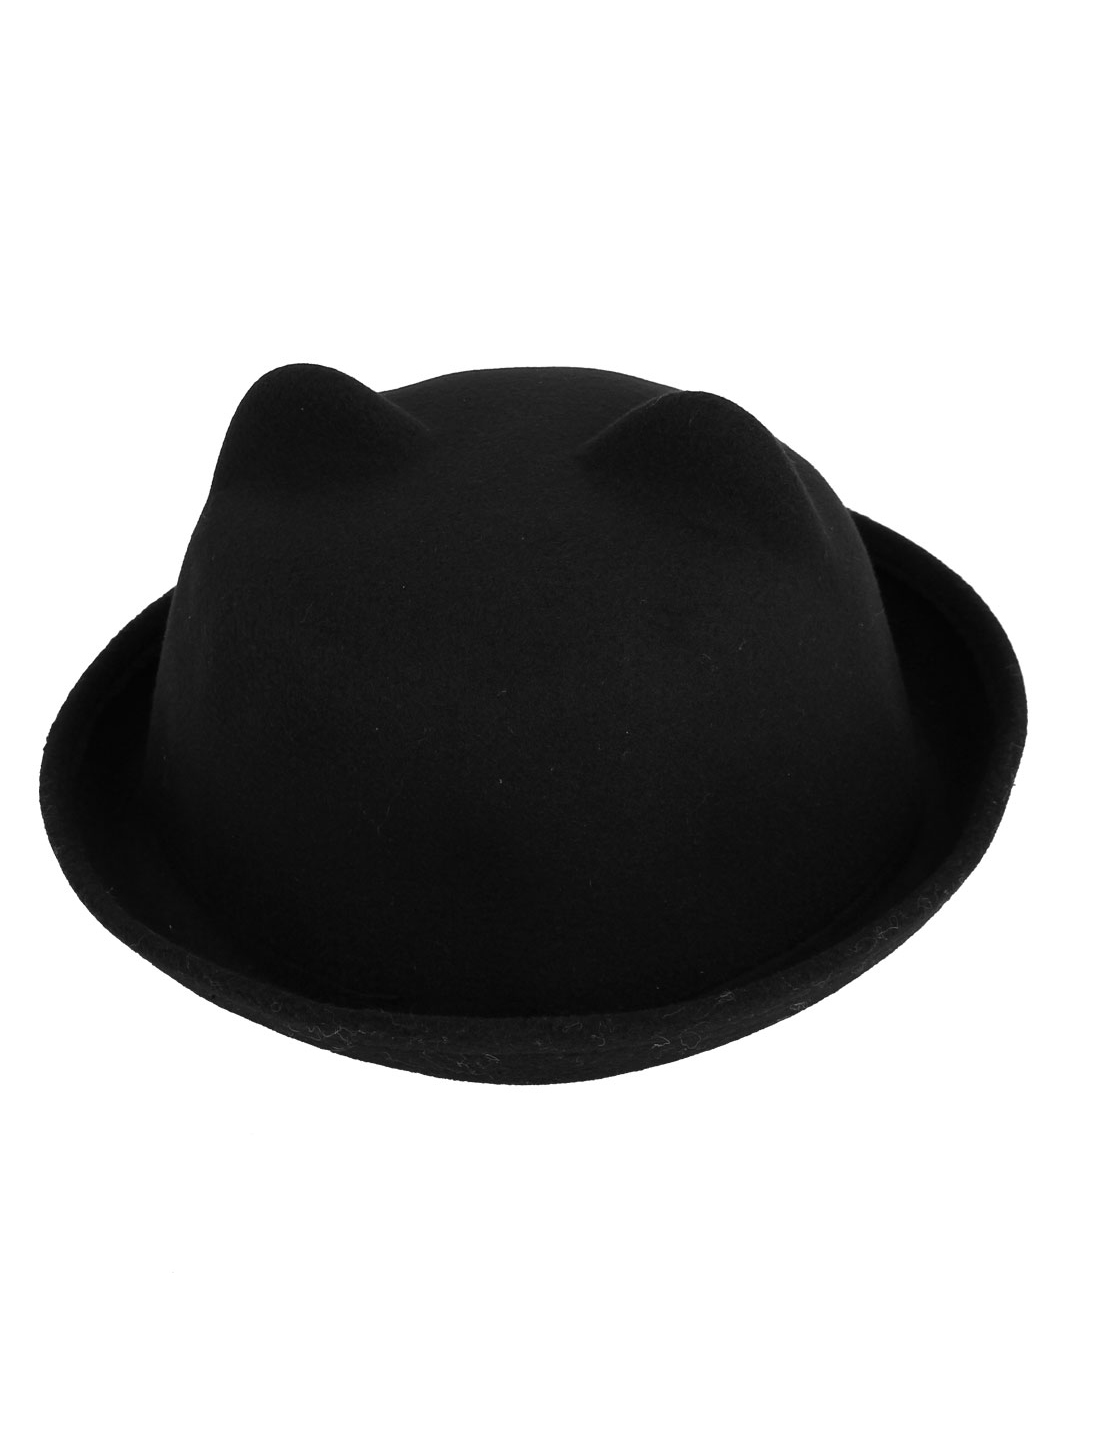 Girl Felt Cat Ear Design Short Brim Wedding Party Winter Bowler Hat Cap Black